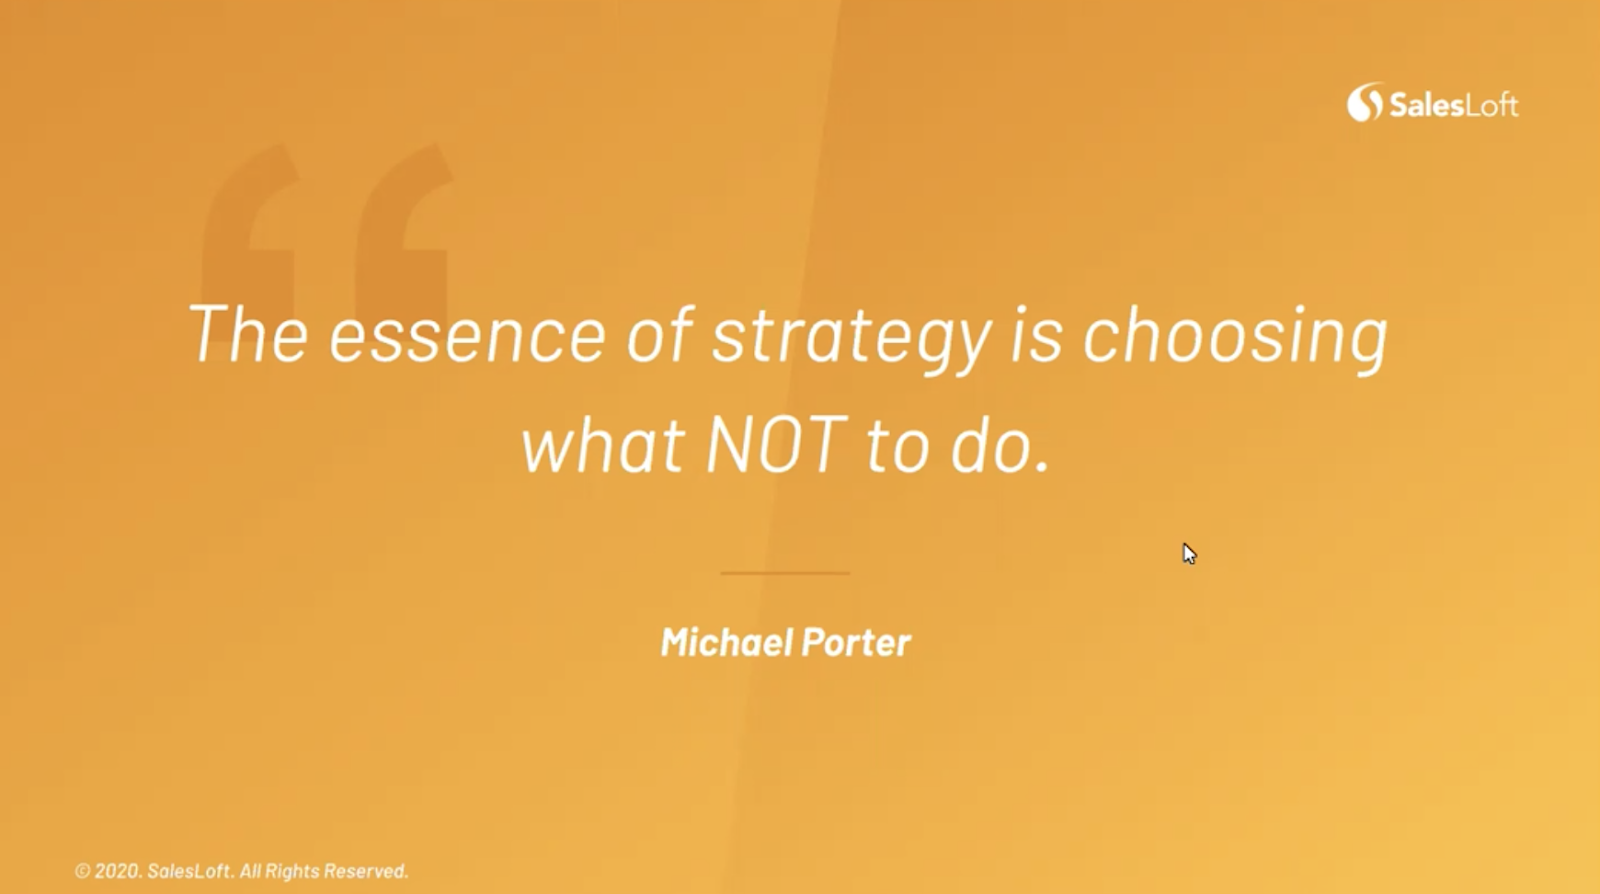 """""""The essence of strategy is choosing what NOT to do."""" - Michael Porter"""